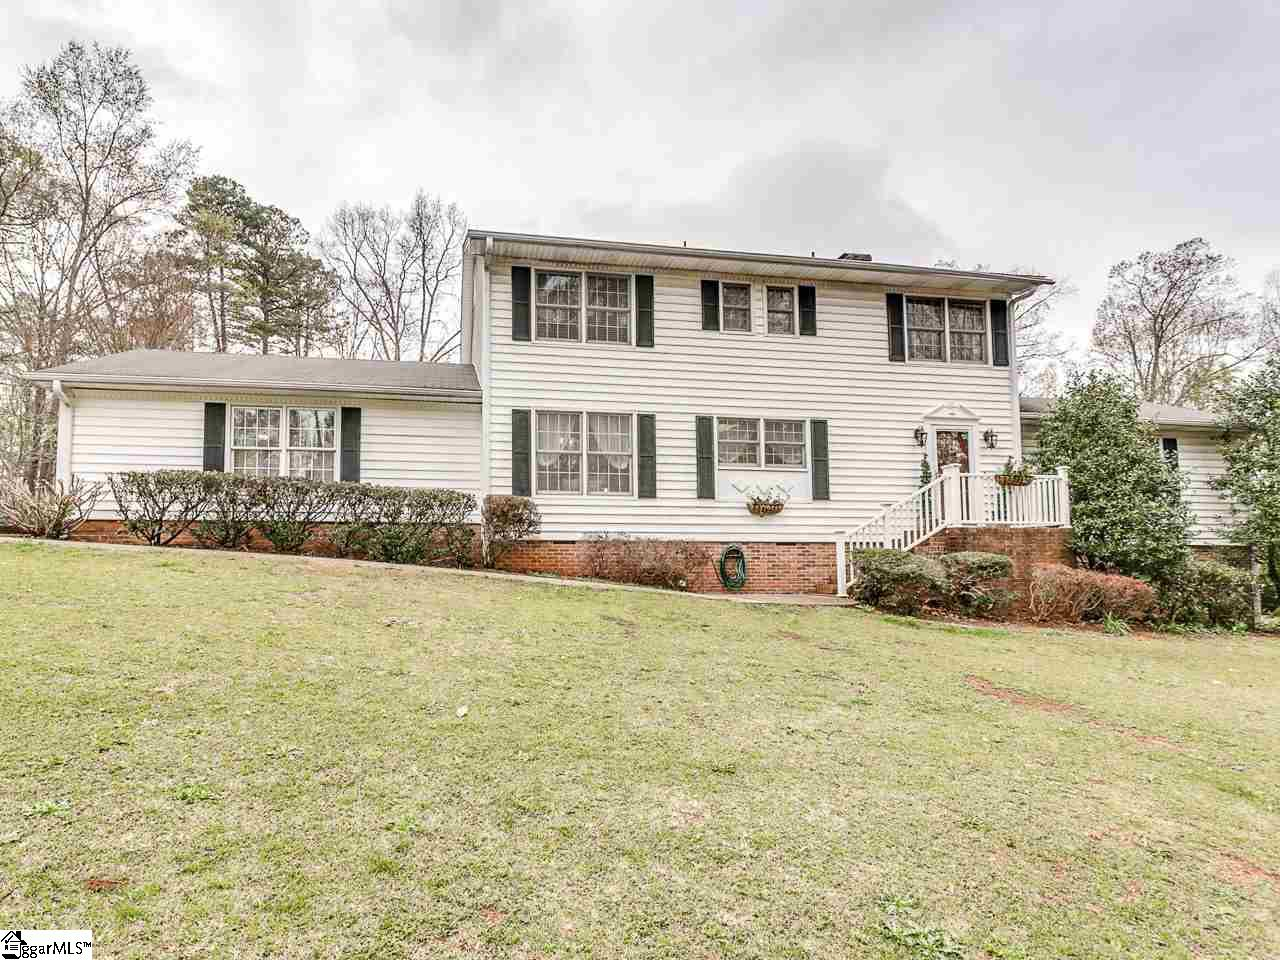 147 Sharcliff Road, Cowpens, SC 29330